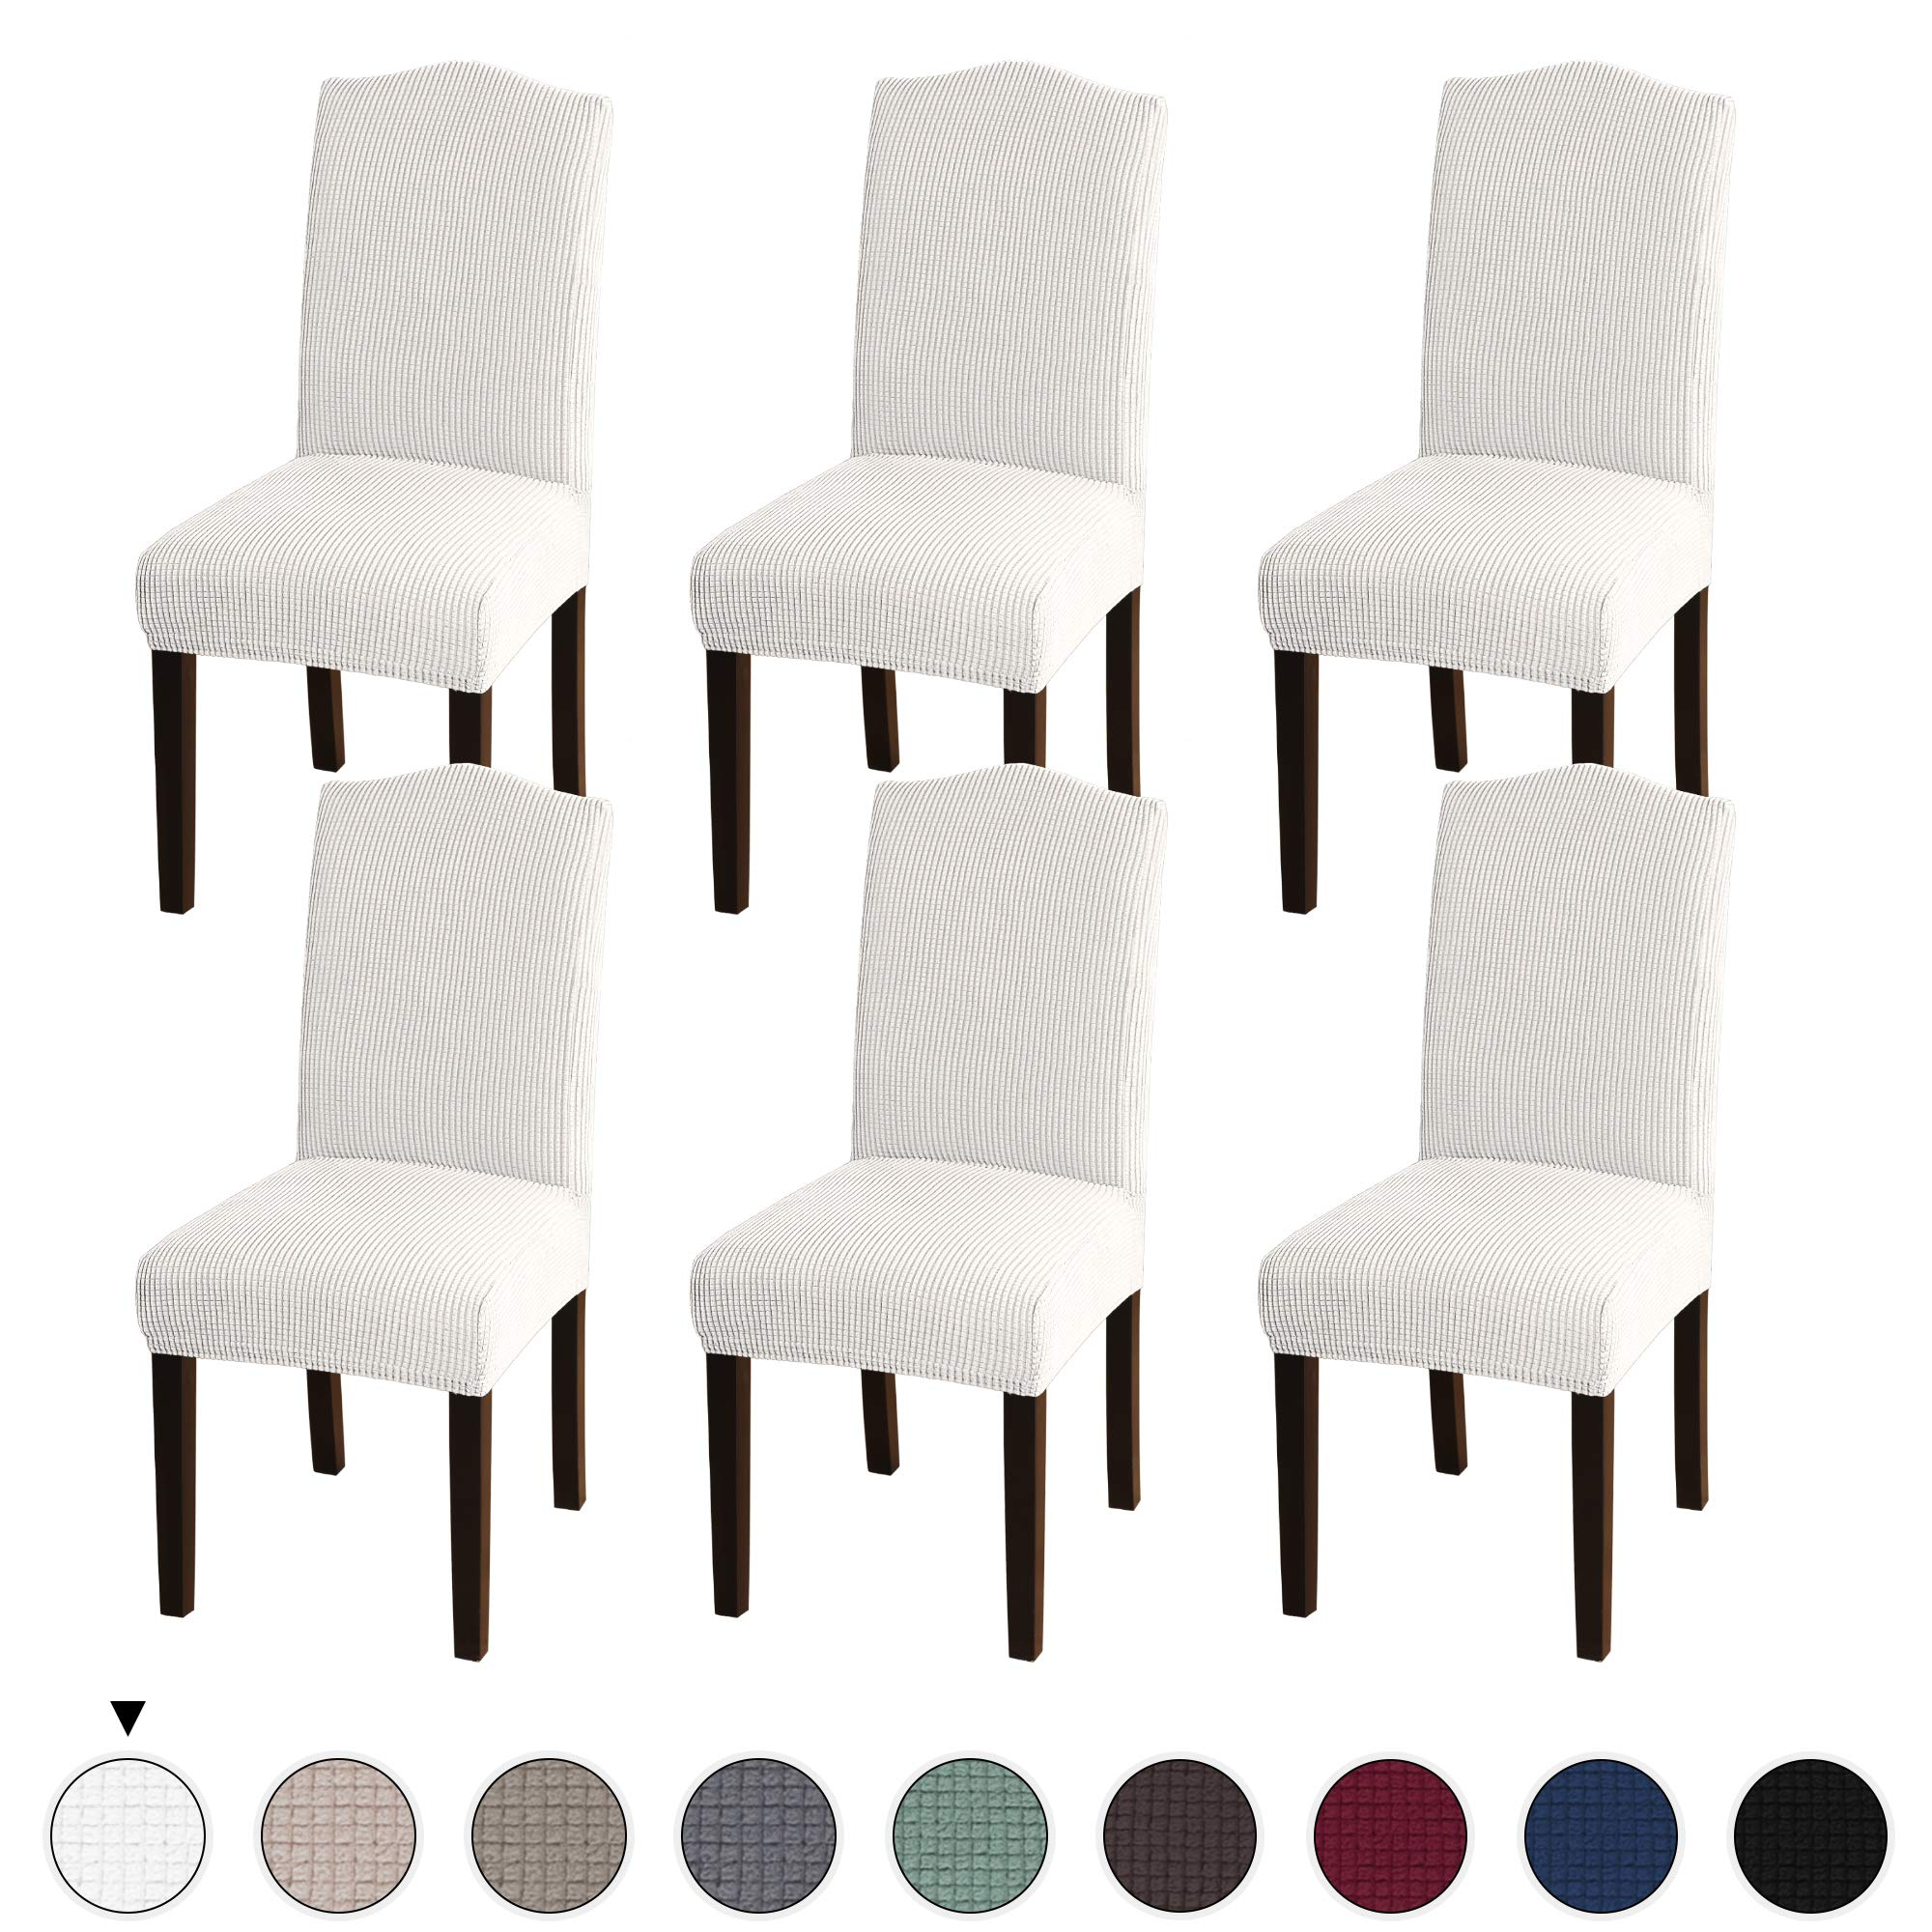 Turquoize Stretch Dining Chair Velvet Fabric Slipcovers Washable Removable Chair Slipcover Dining Chair Protector Cover for Dining Room Set of 6, Ivory by Turquoize